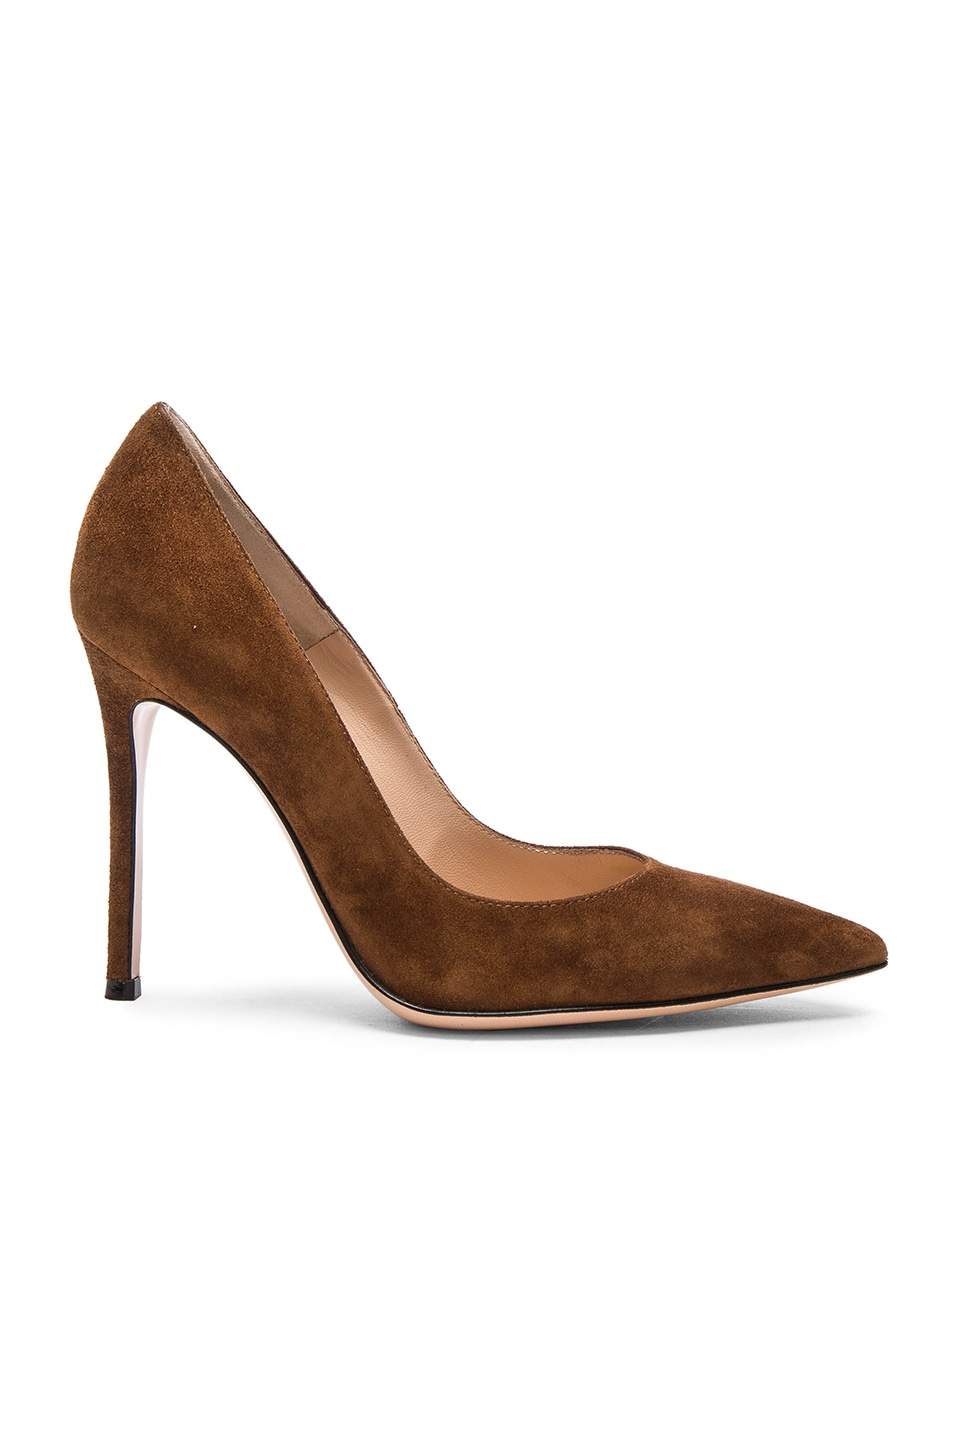 Image 1 of Gianvito Rossi Suede Pumps in Texas